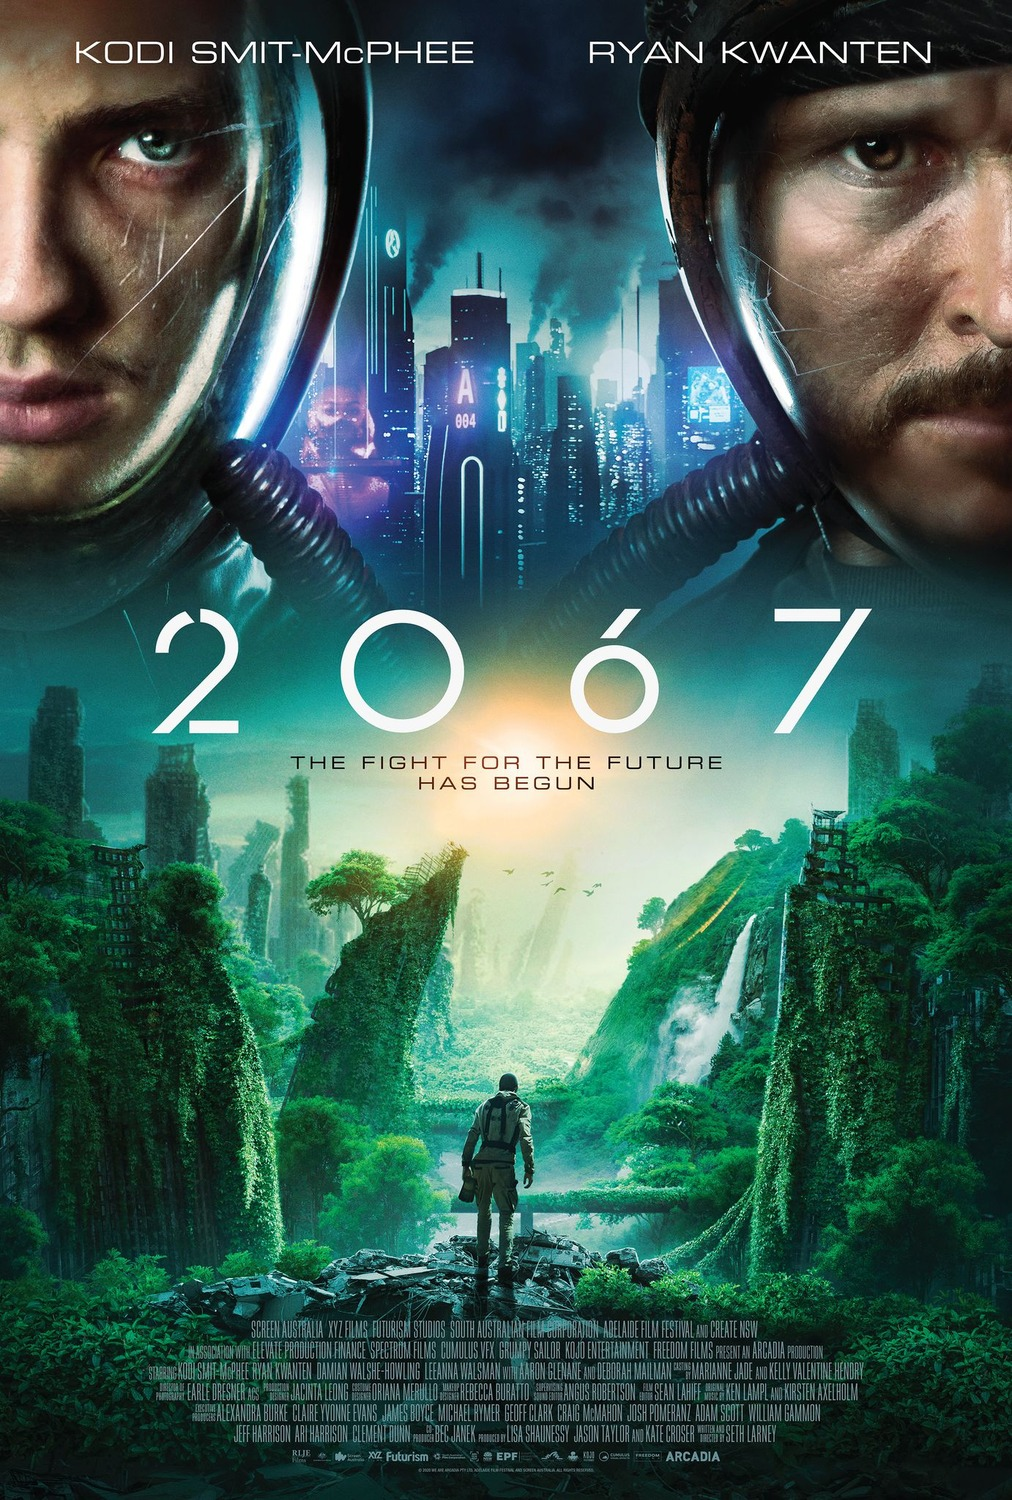 2067 Movie trailer : Teaser Trailer